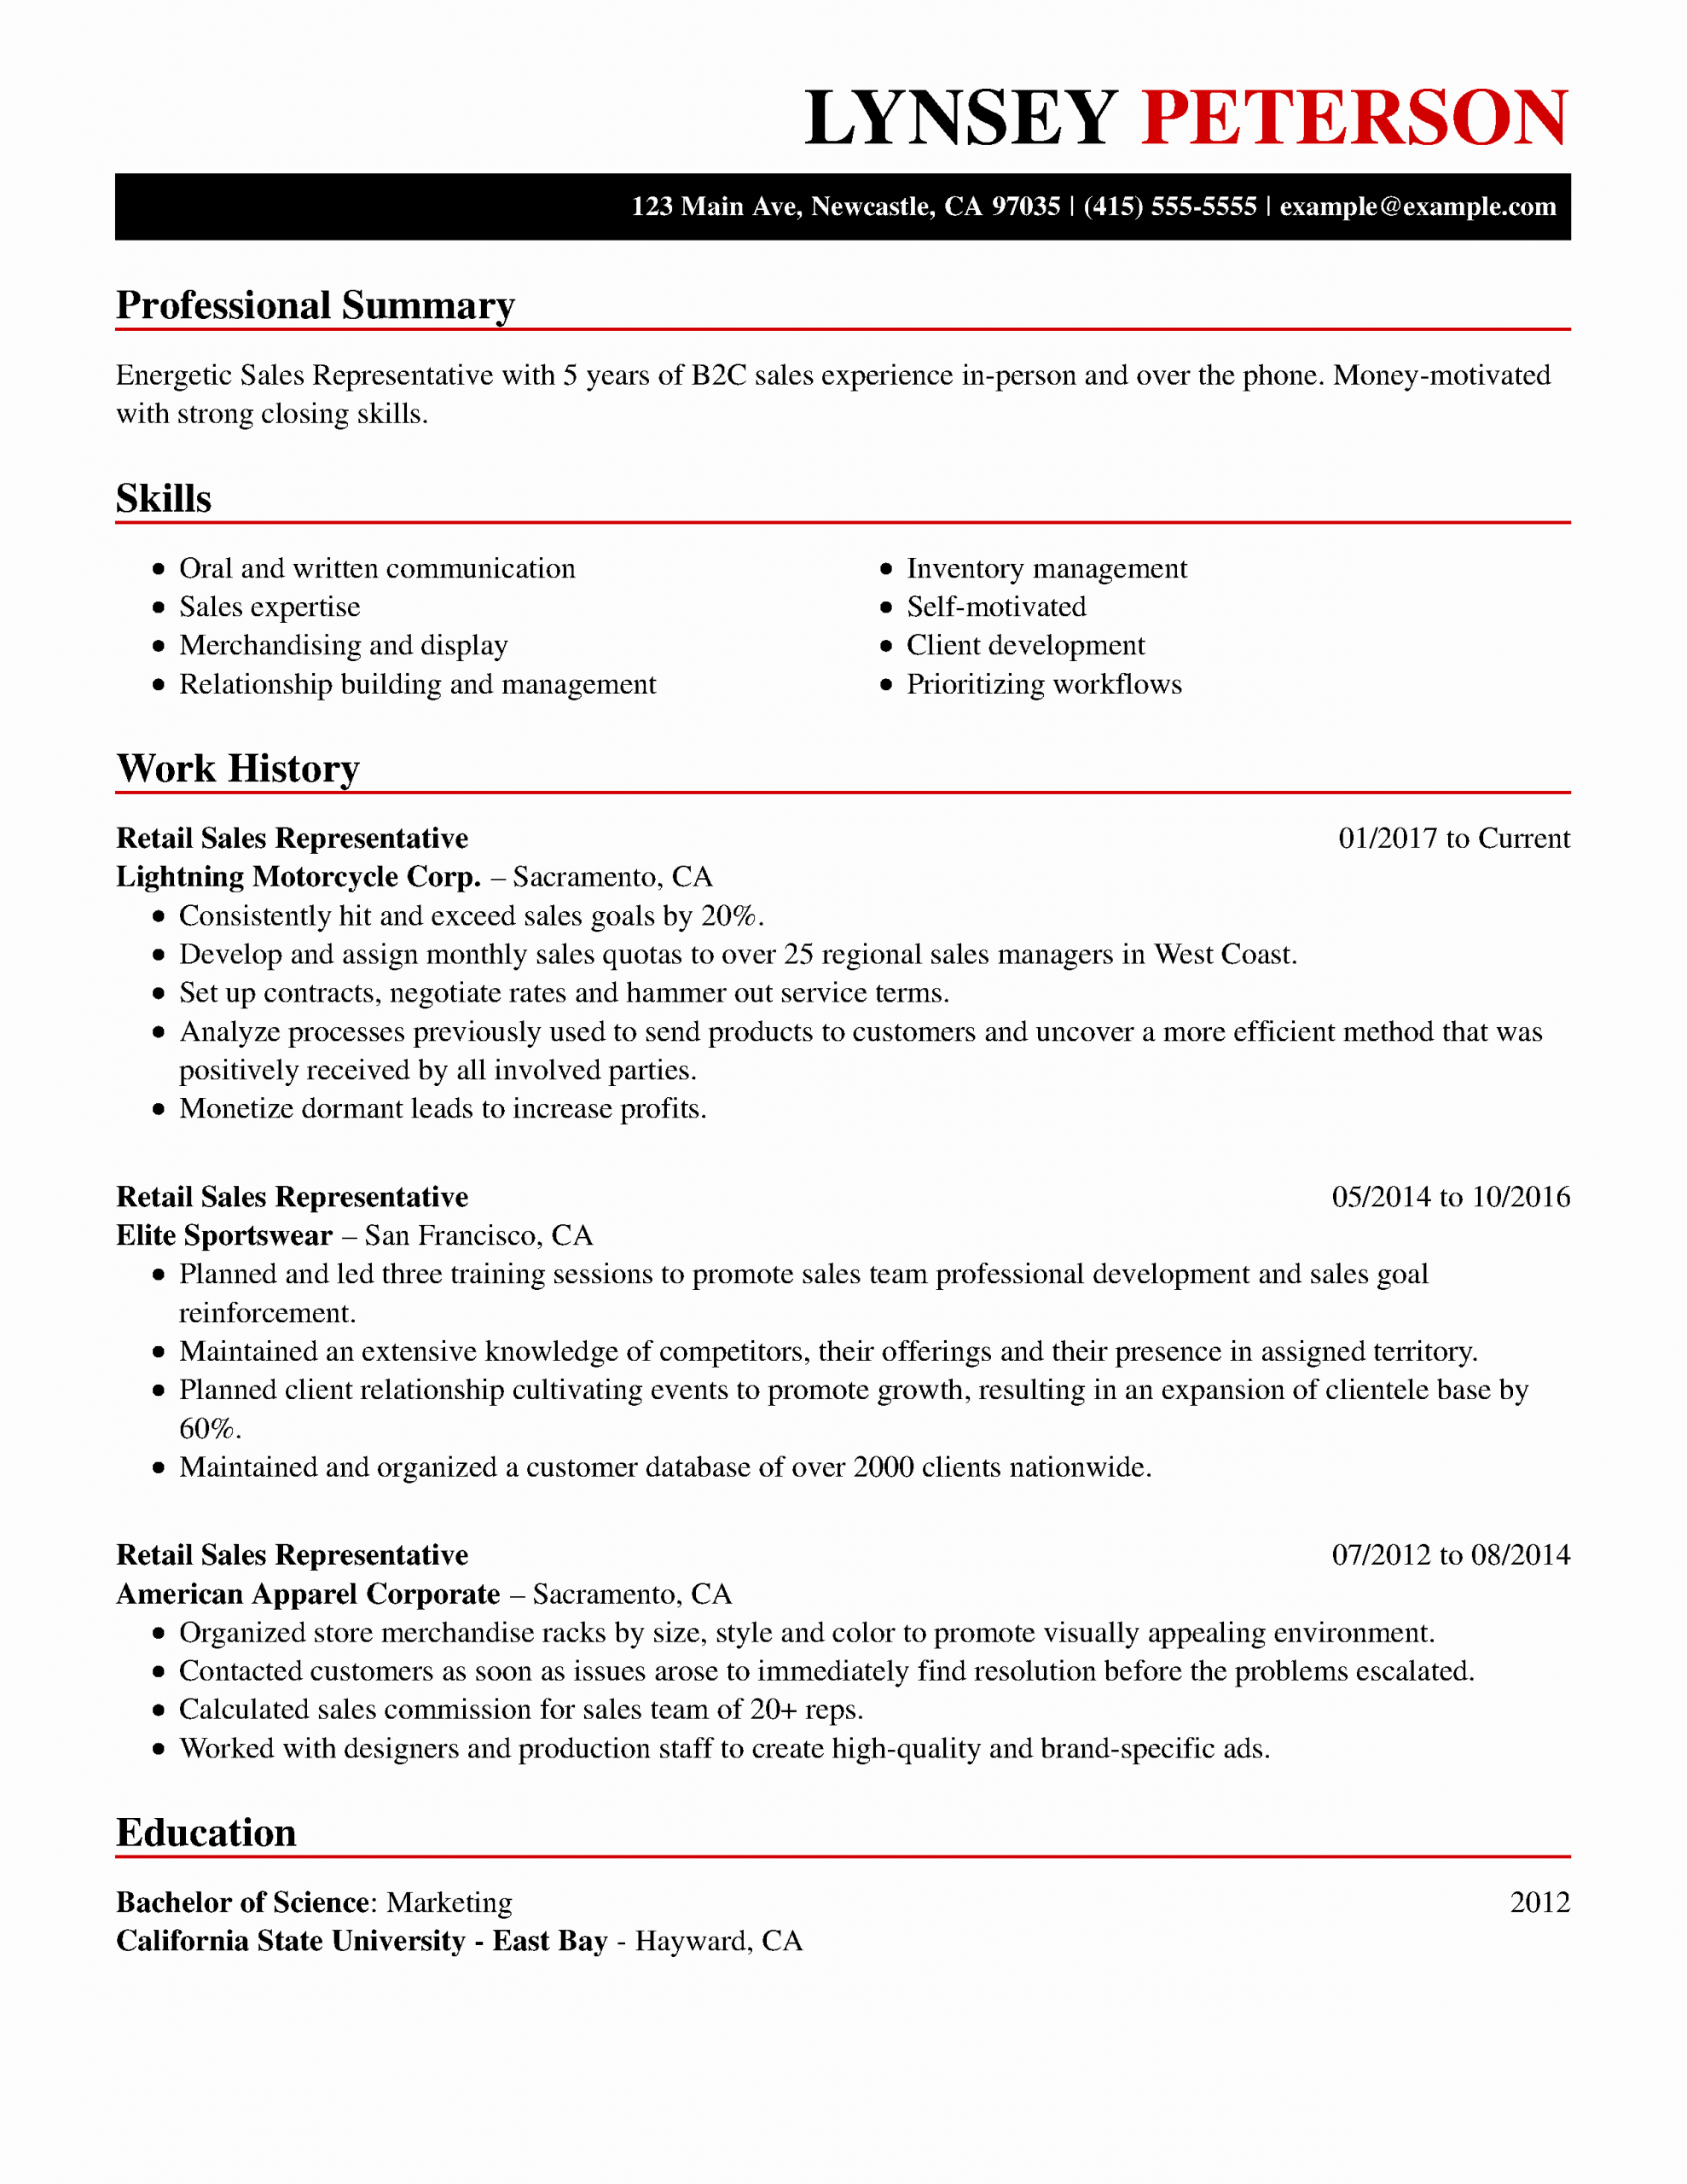 23 Strong Resume Headline Examples in 2020 Good resume